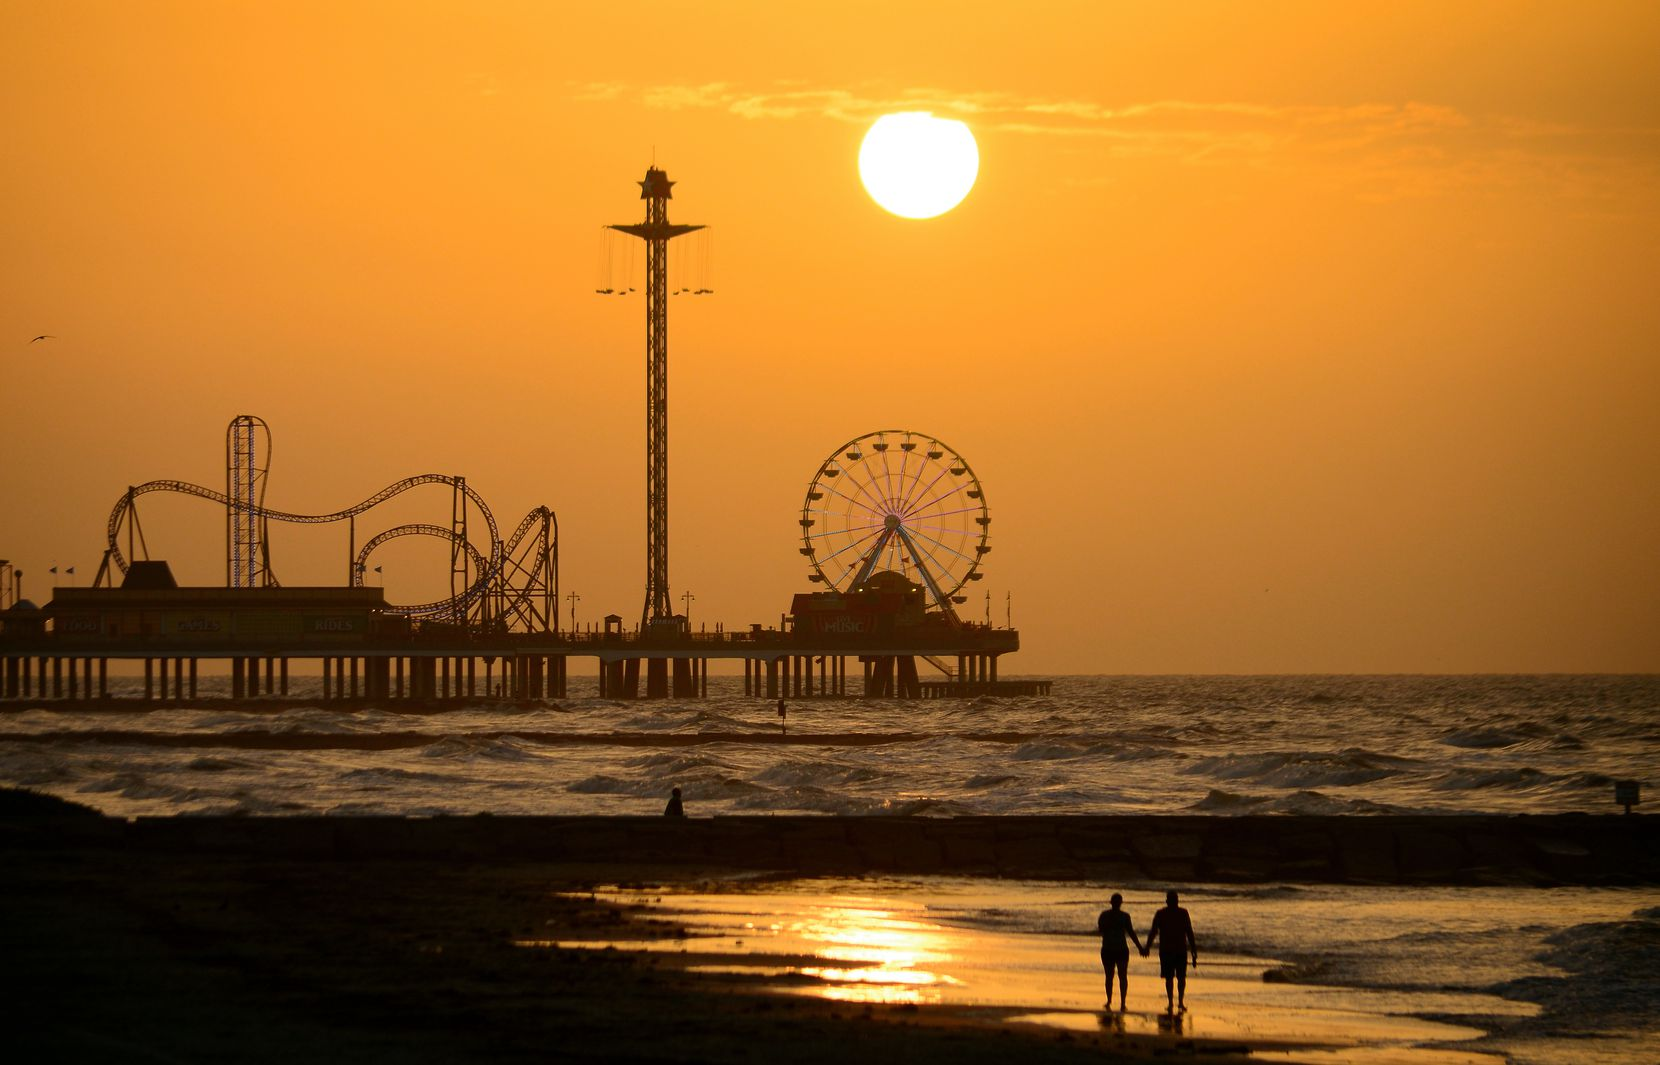 The historic Pleasure Pier is one of Galveston's iconic beach attractions.